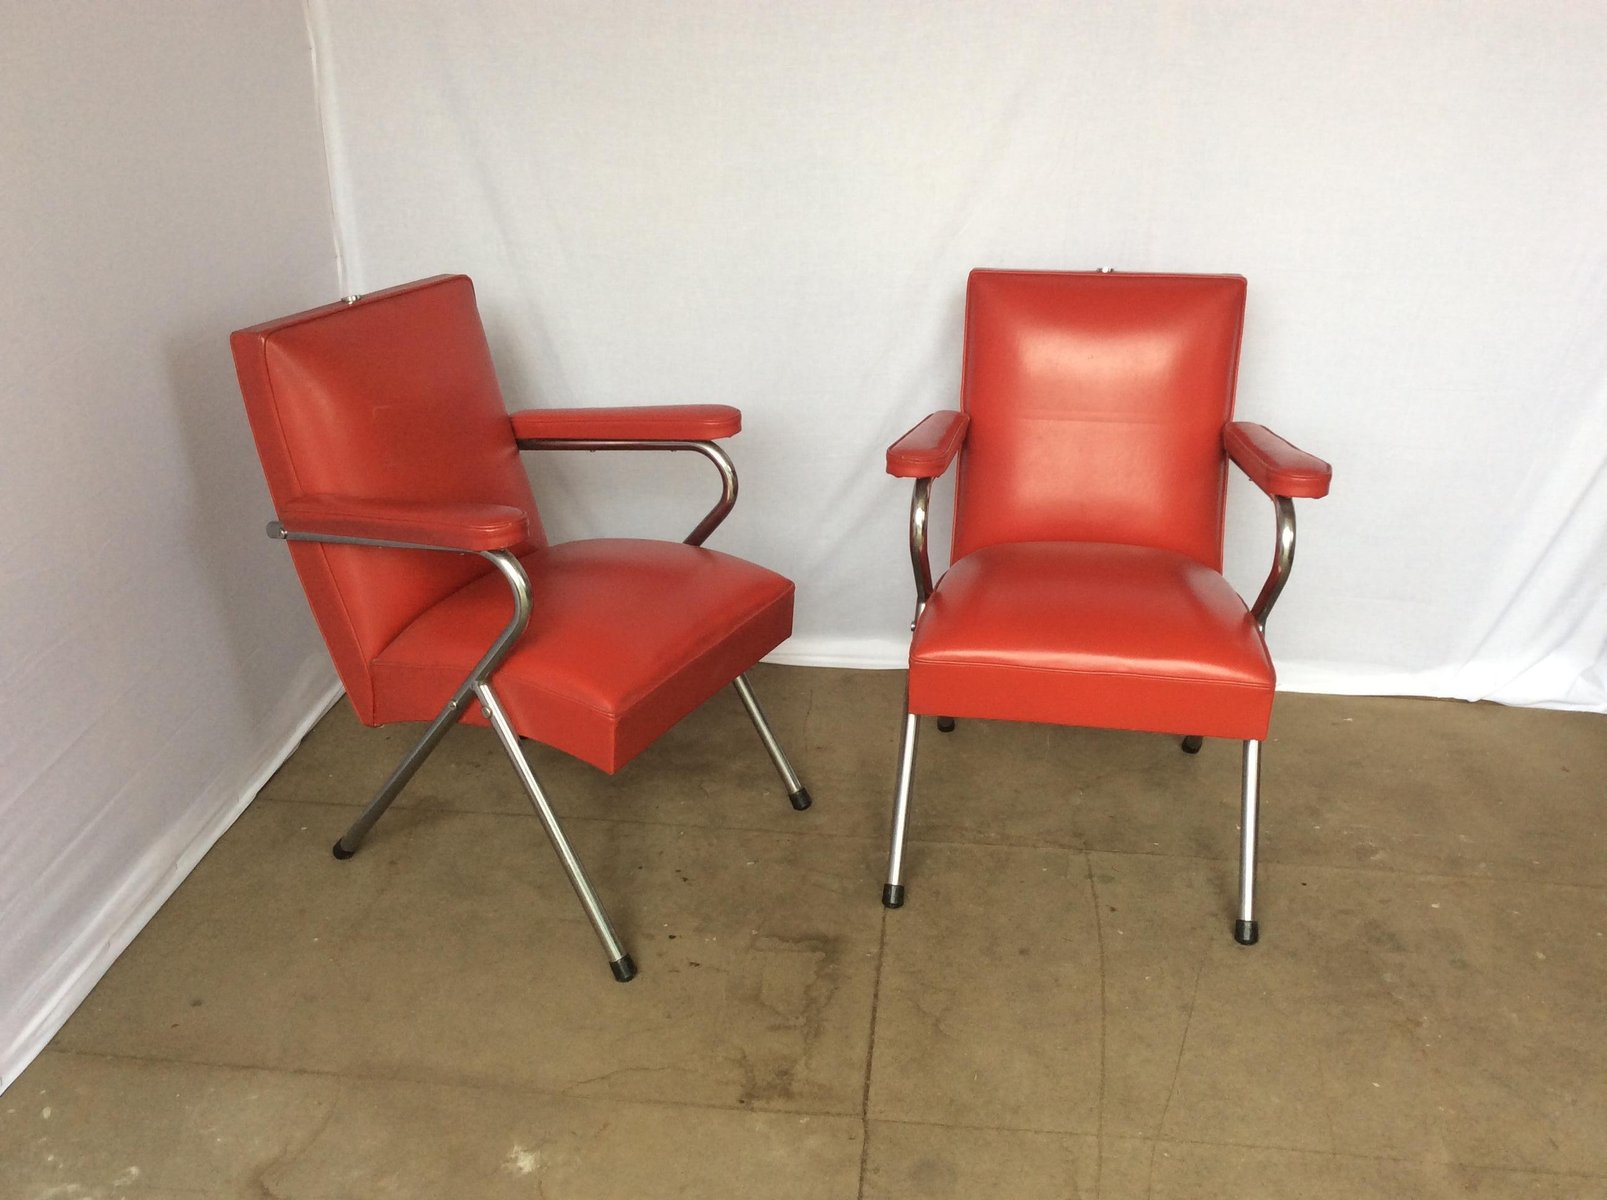 red chairs for sale fishing chair base chrome and vinyl salon 1960s set of 2